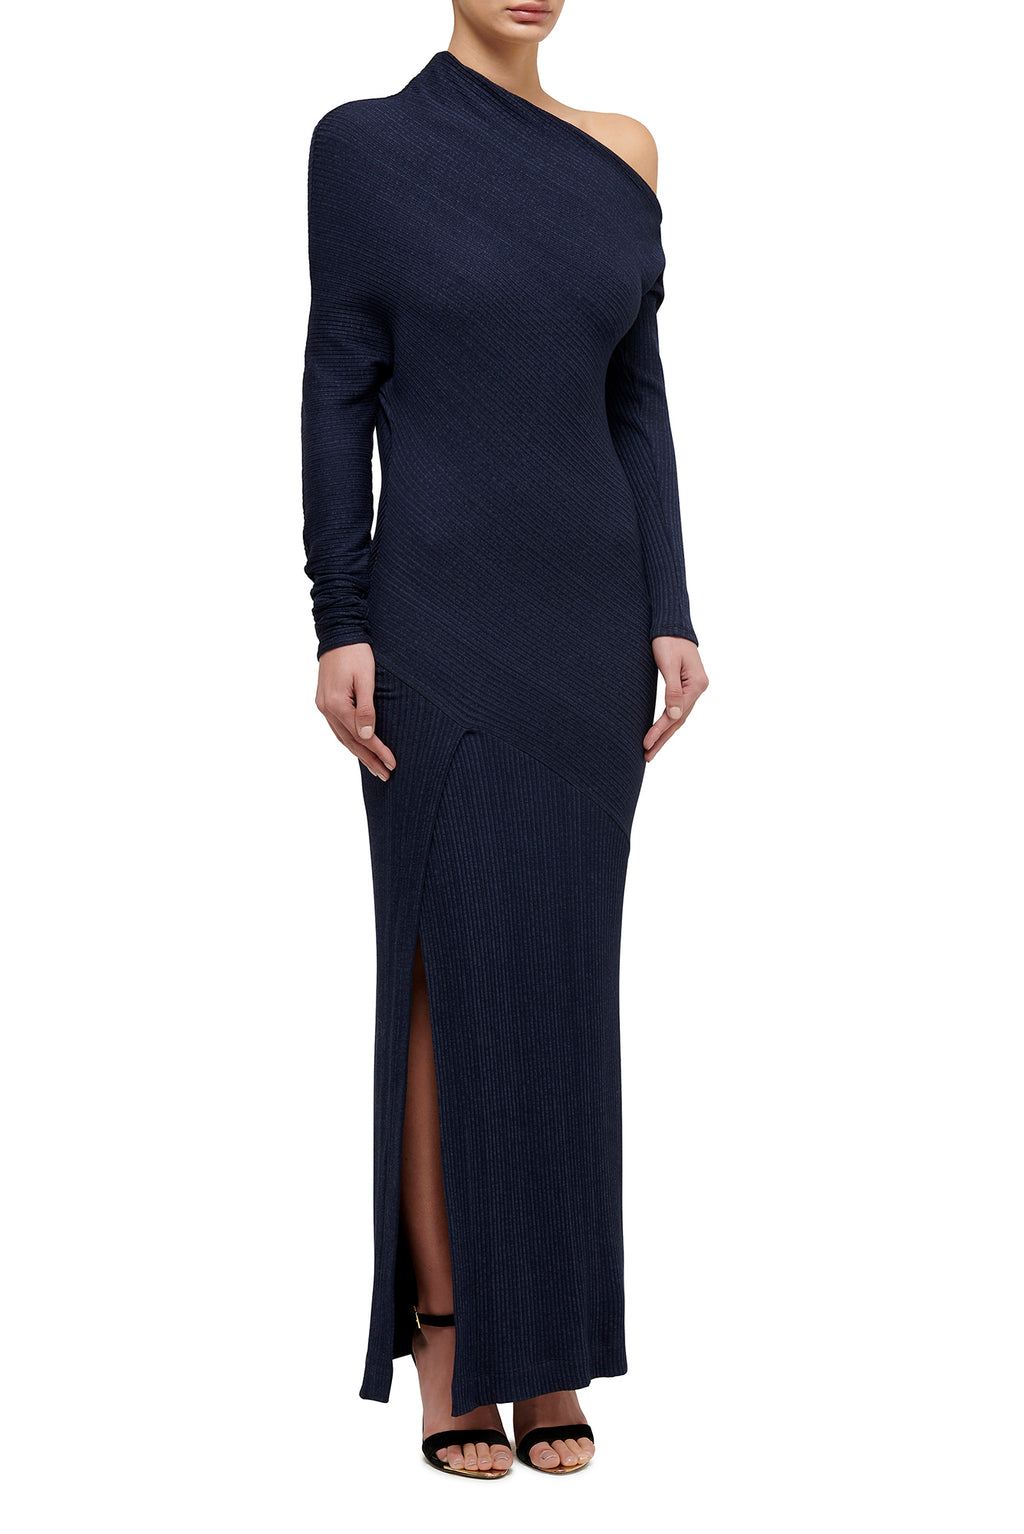 Asymmetric Knit Maxi Dress - Navy